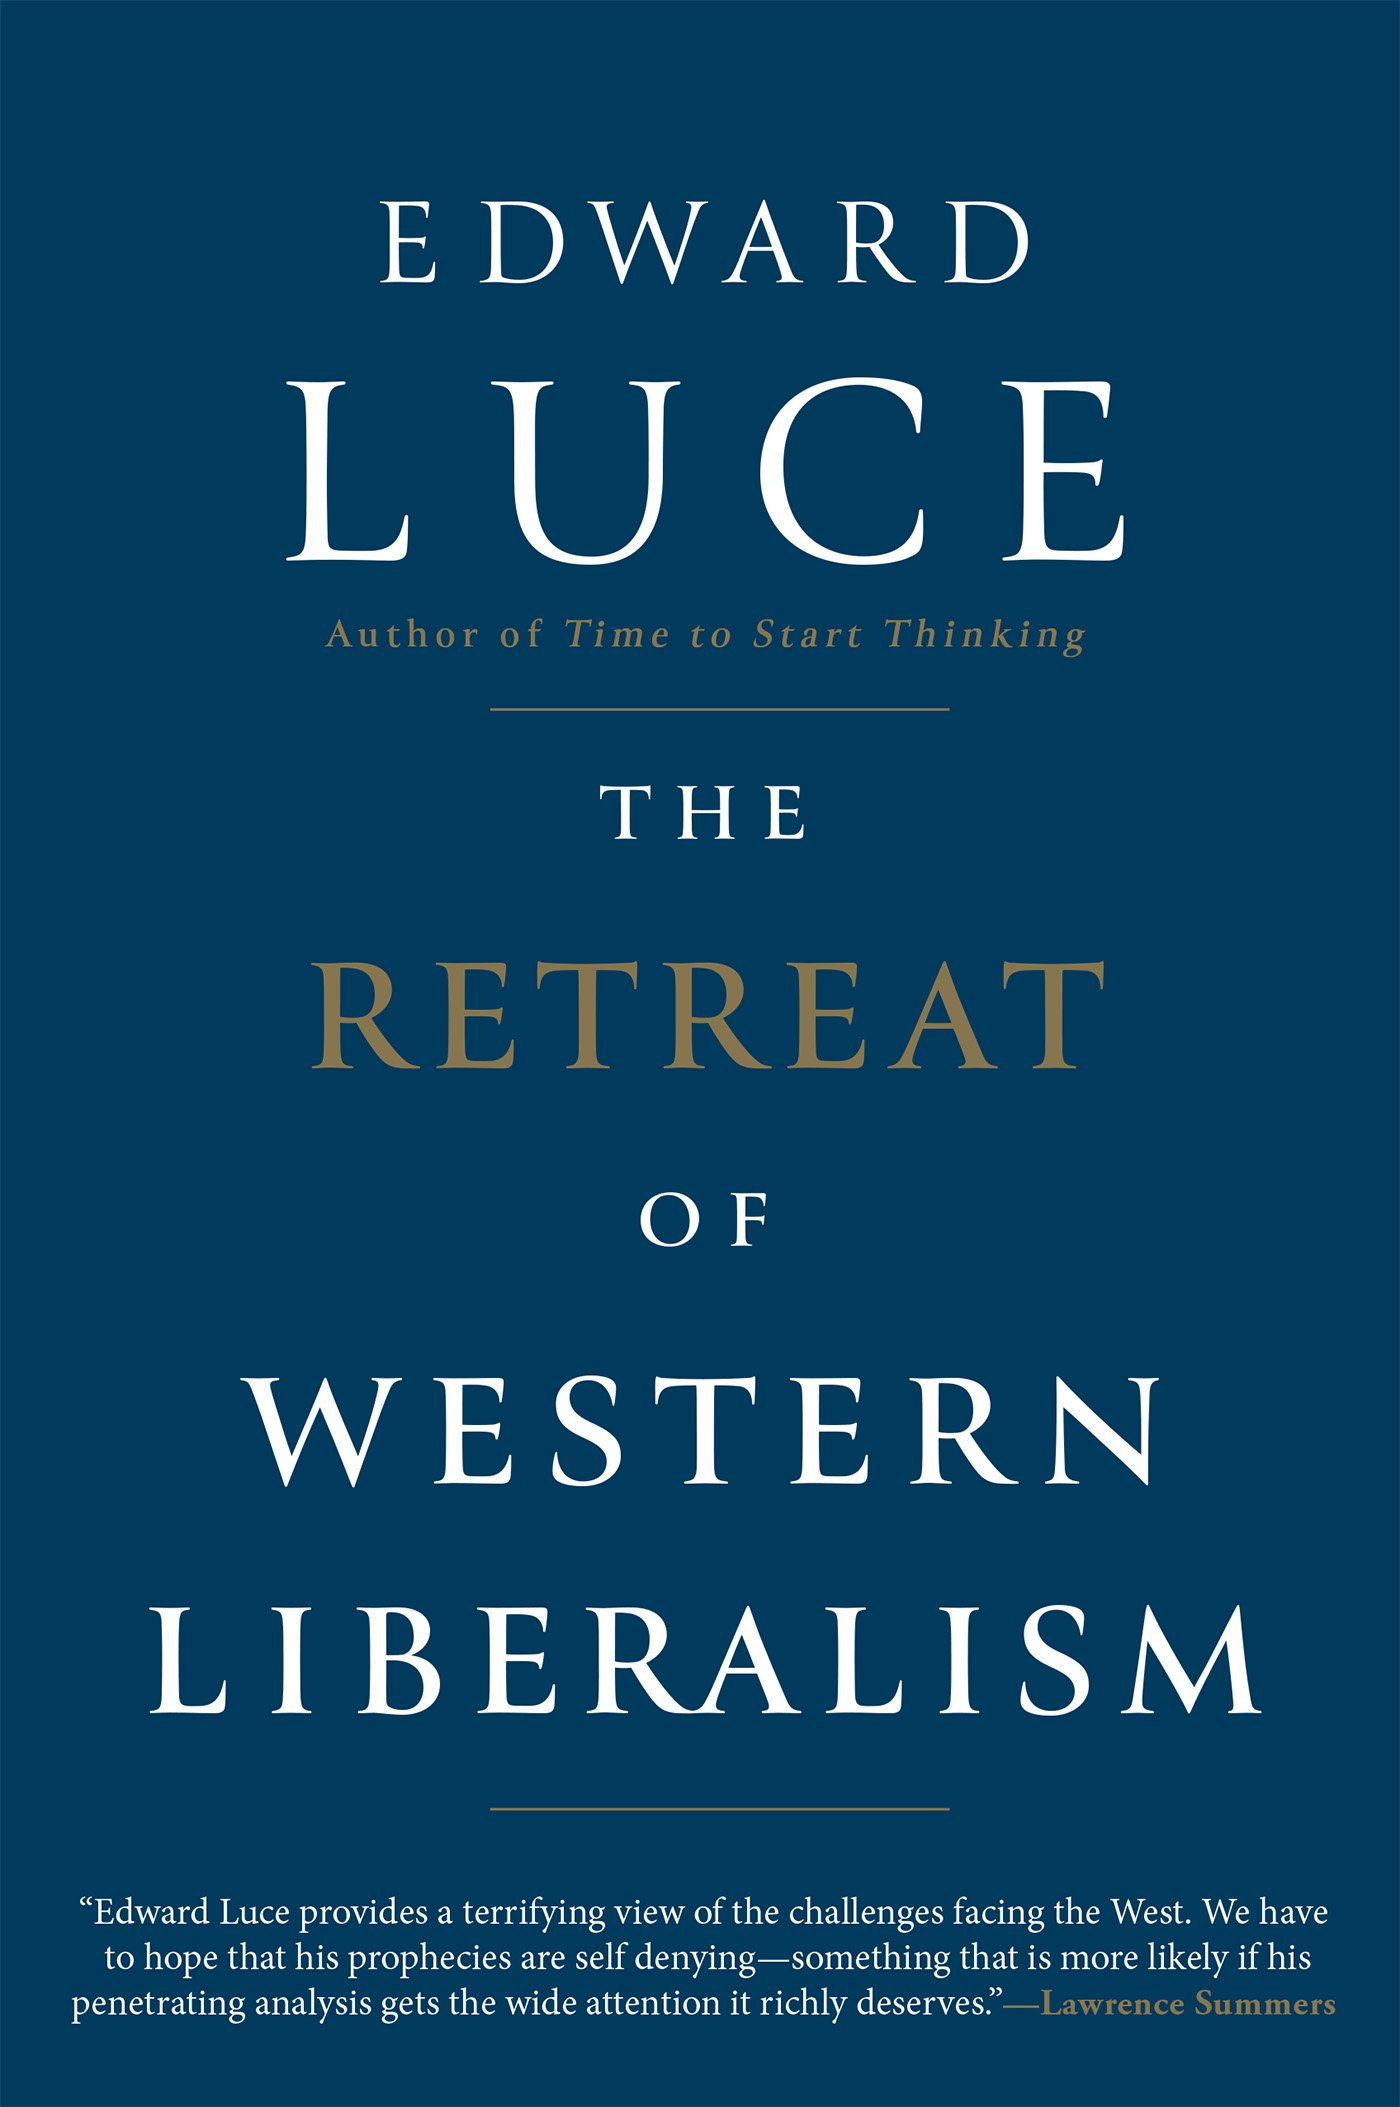 Discounted copies of The Retreat of Western Liberalism by Edward Luce